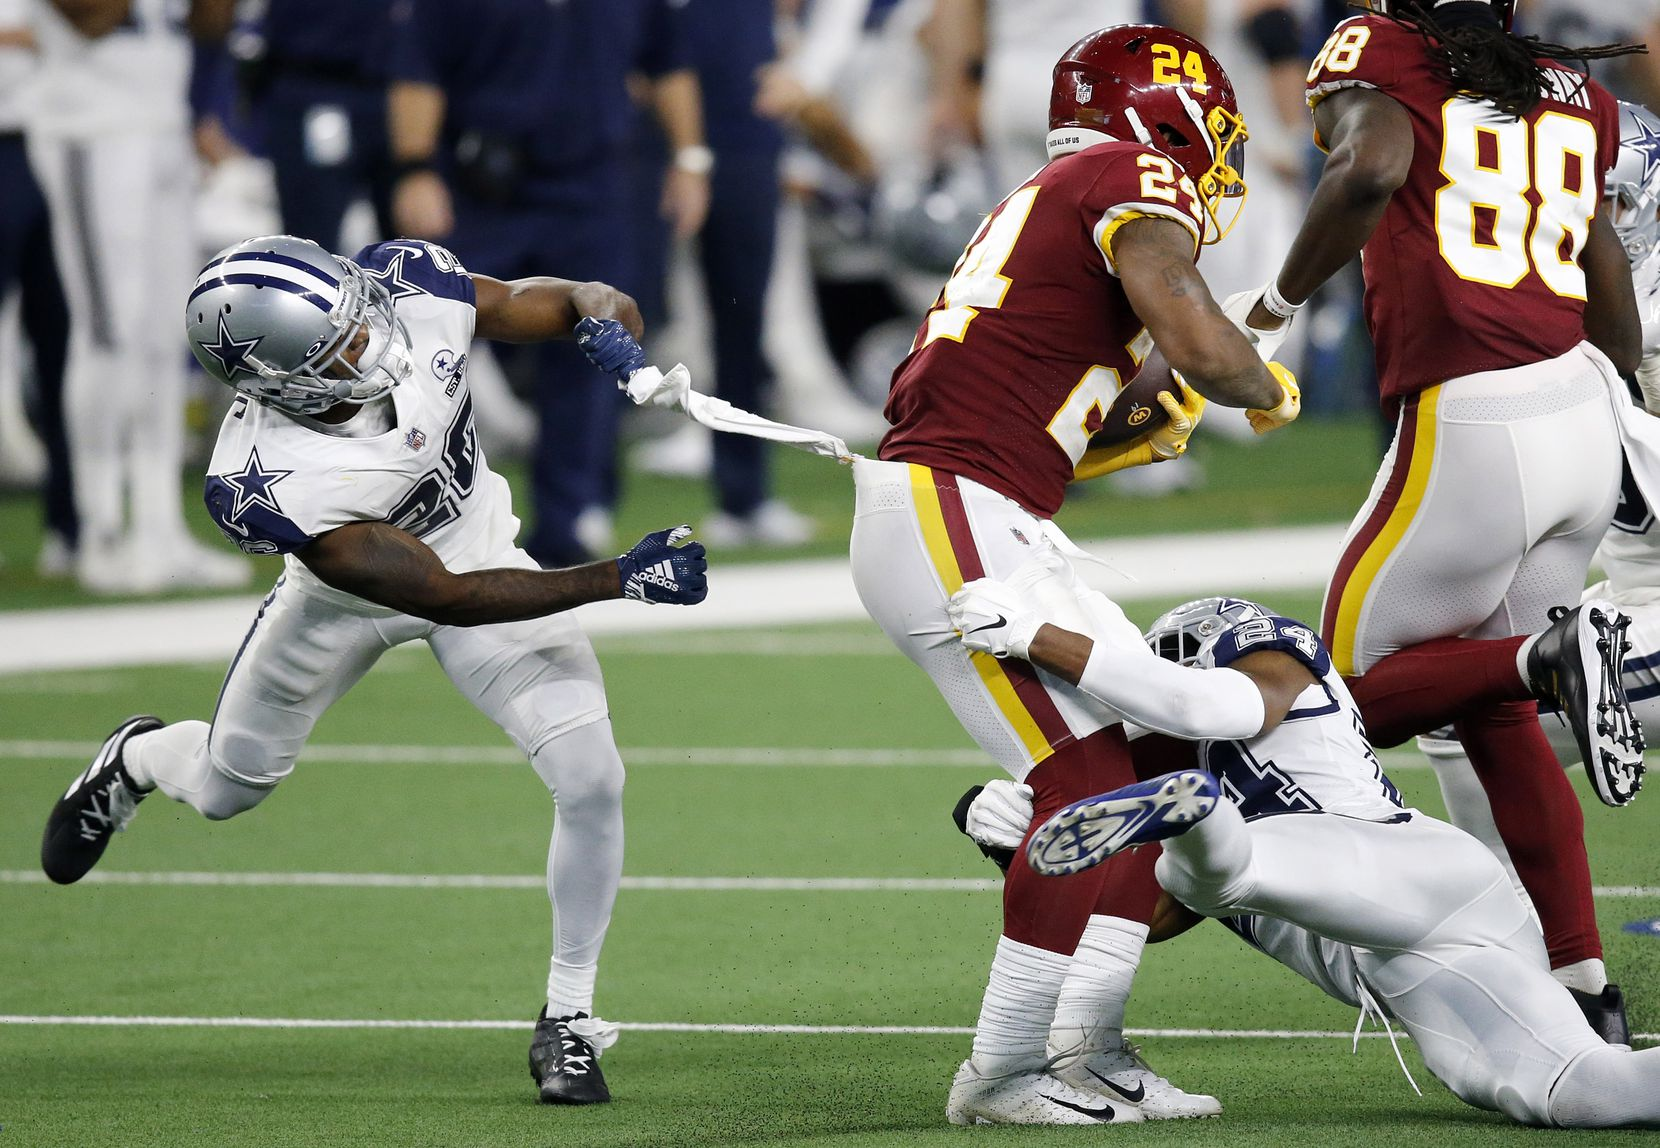 Dallas Cowboys cornerback Jourdan Lewis (26, left) and cornerback Chidobe Awuzie (24) try to bring down Washington Football Team running back Antonio Gibson (24) during the third quarter at AT&T Stadium in Arlington, Thursday, November 26, 2020. (Tom Fox/The Dallas Morning News)